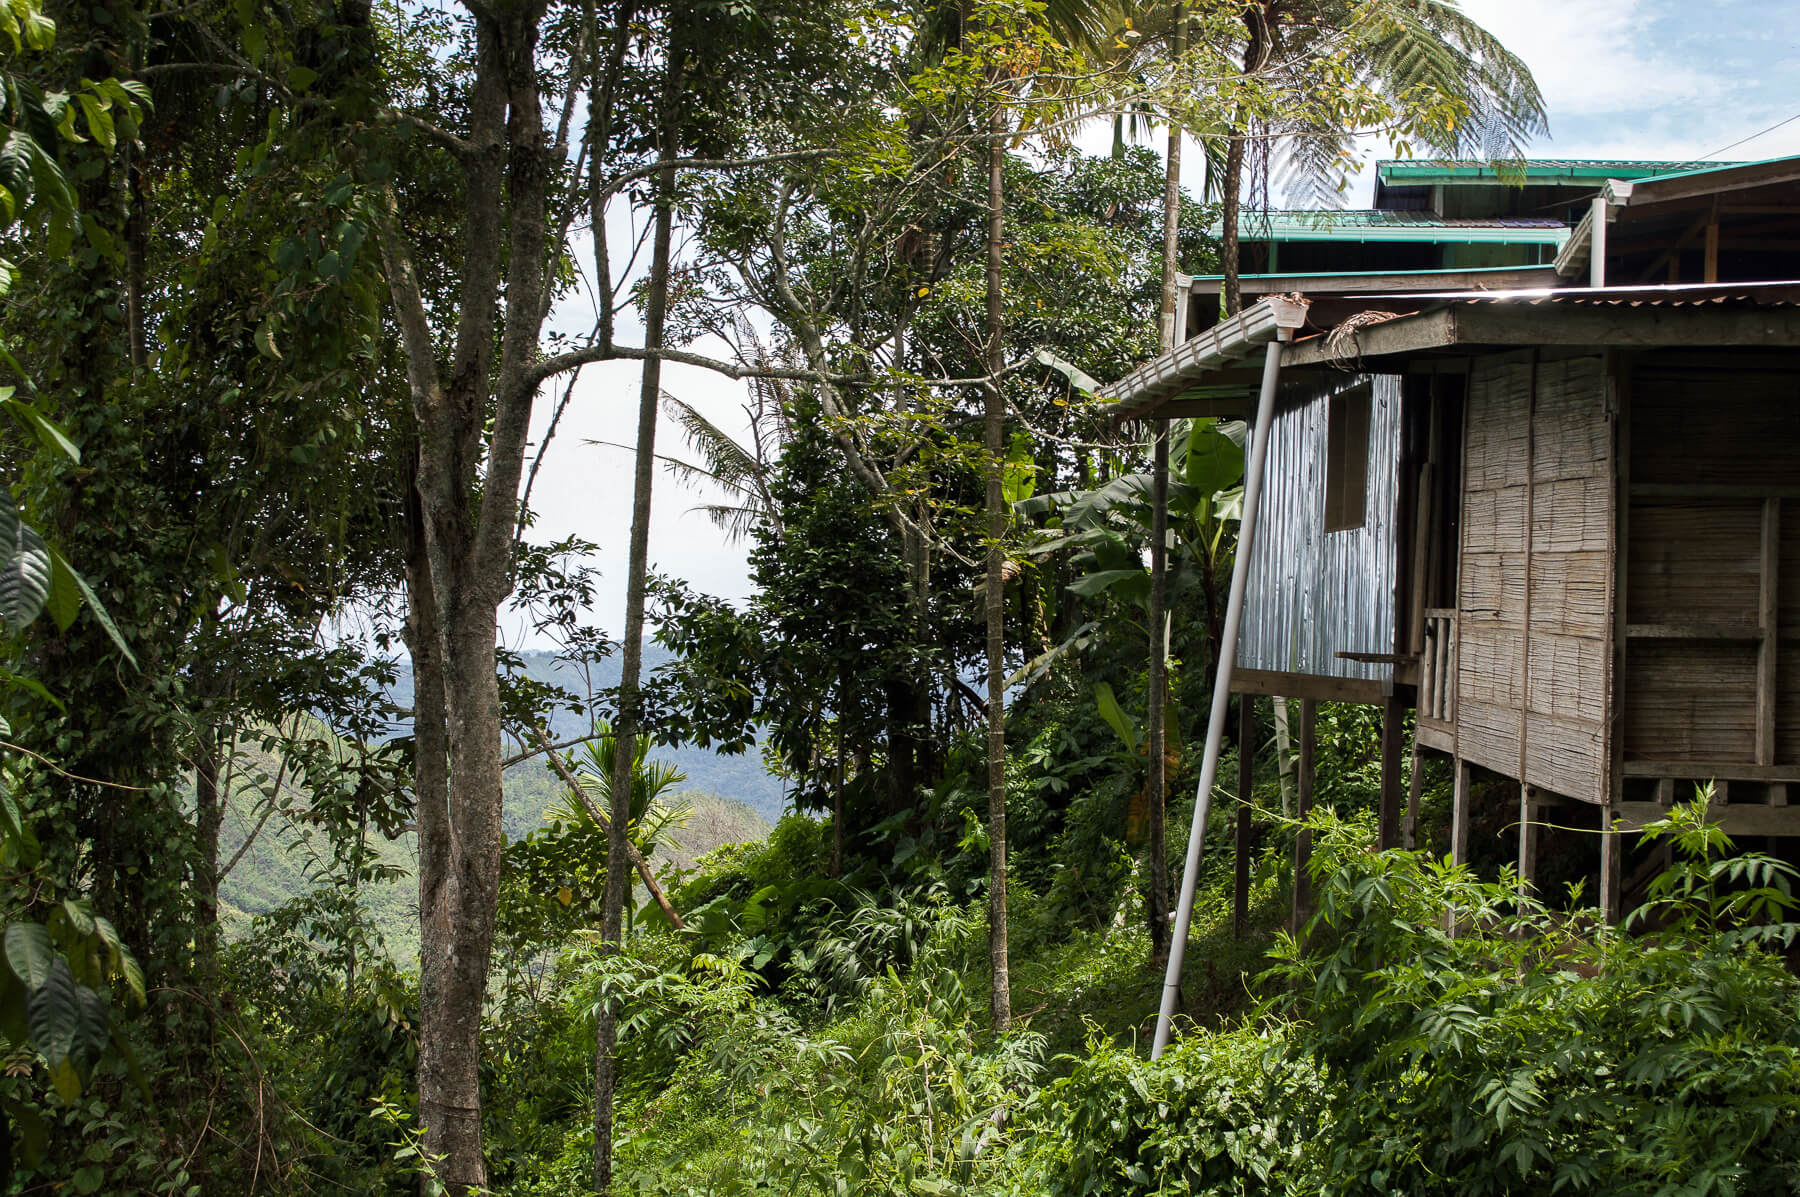 A house on stilts in the mountains of Kinabalu